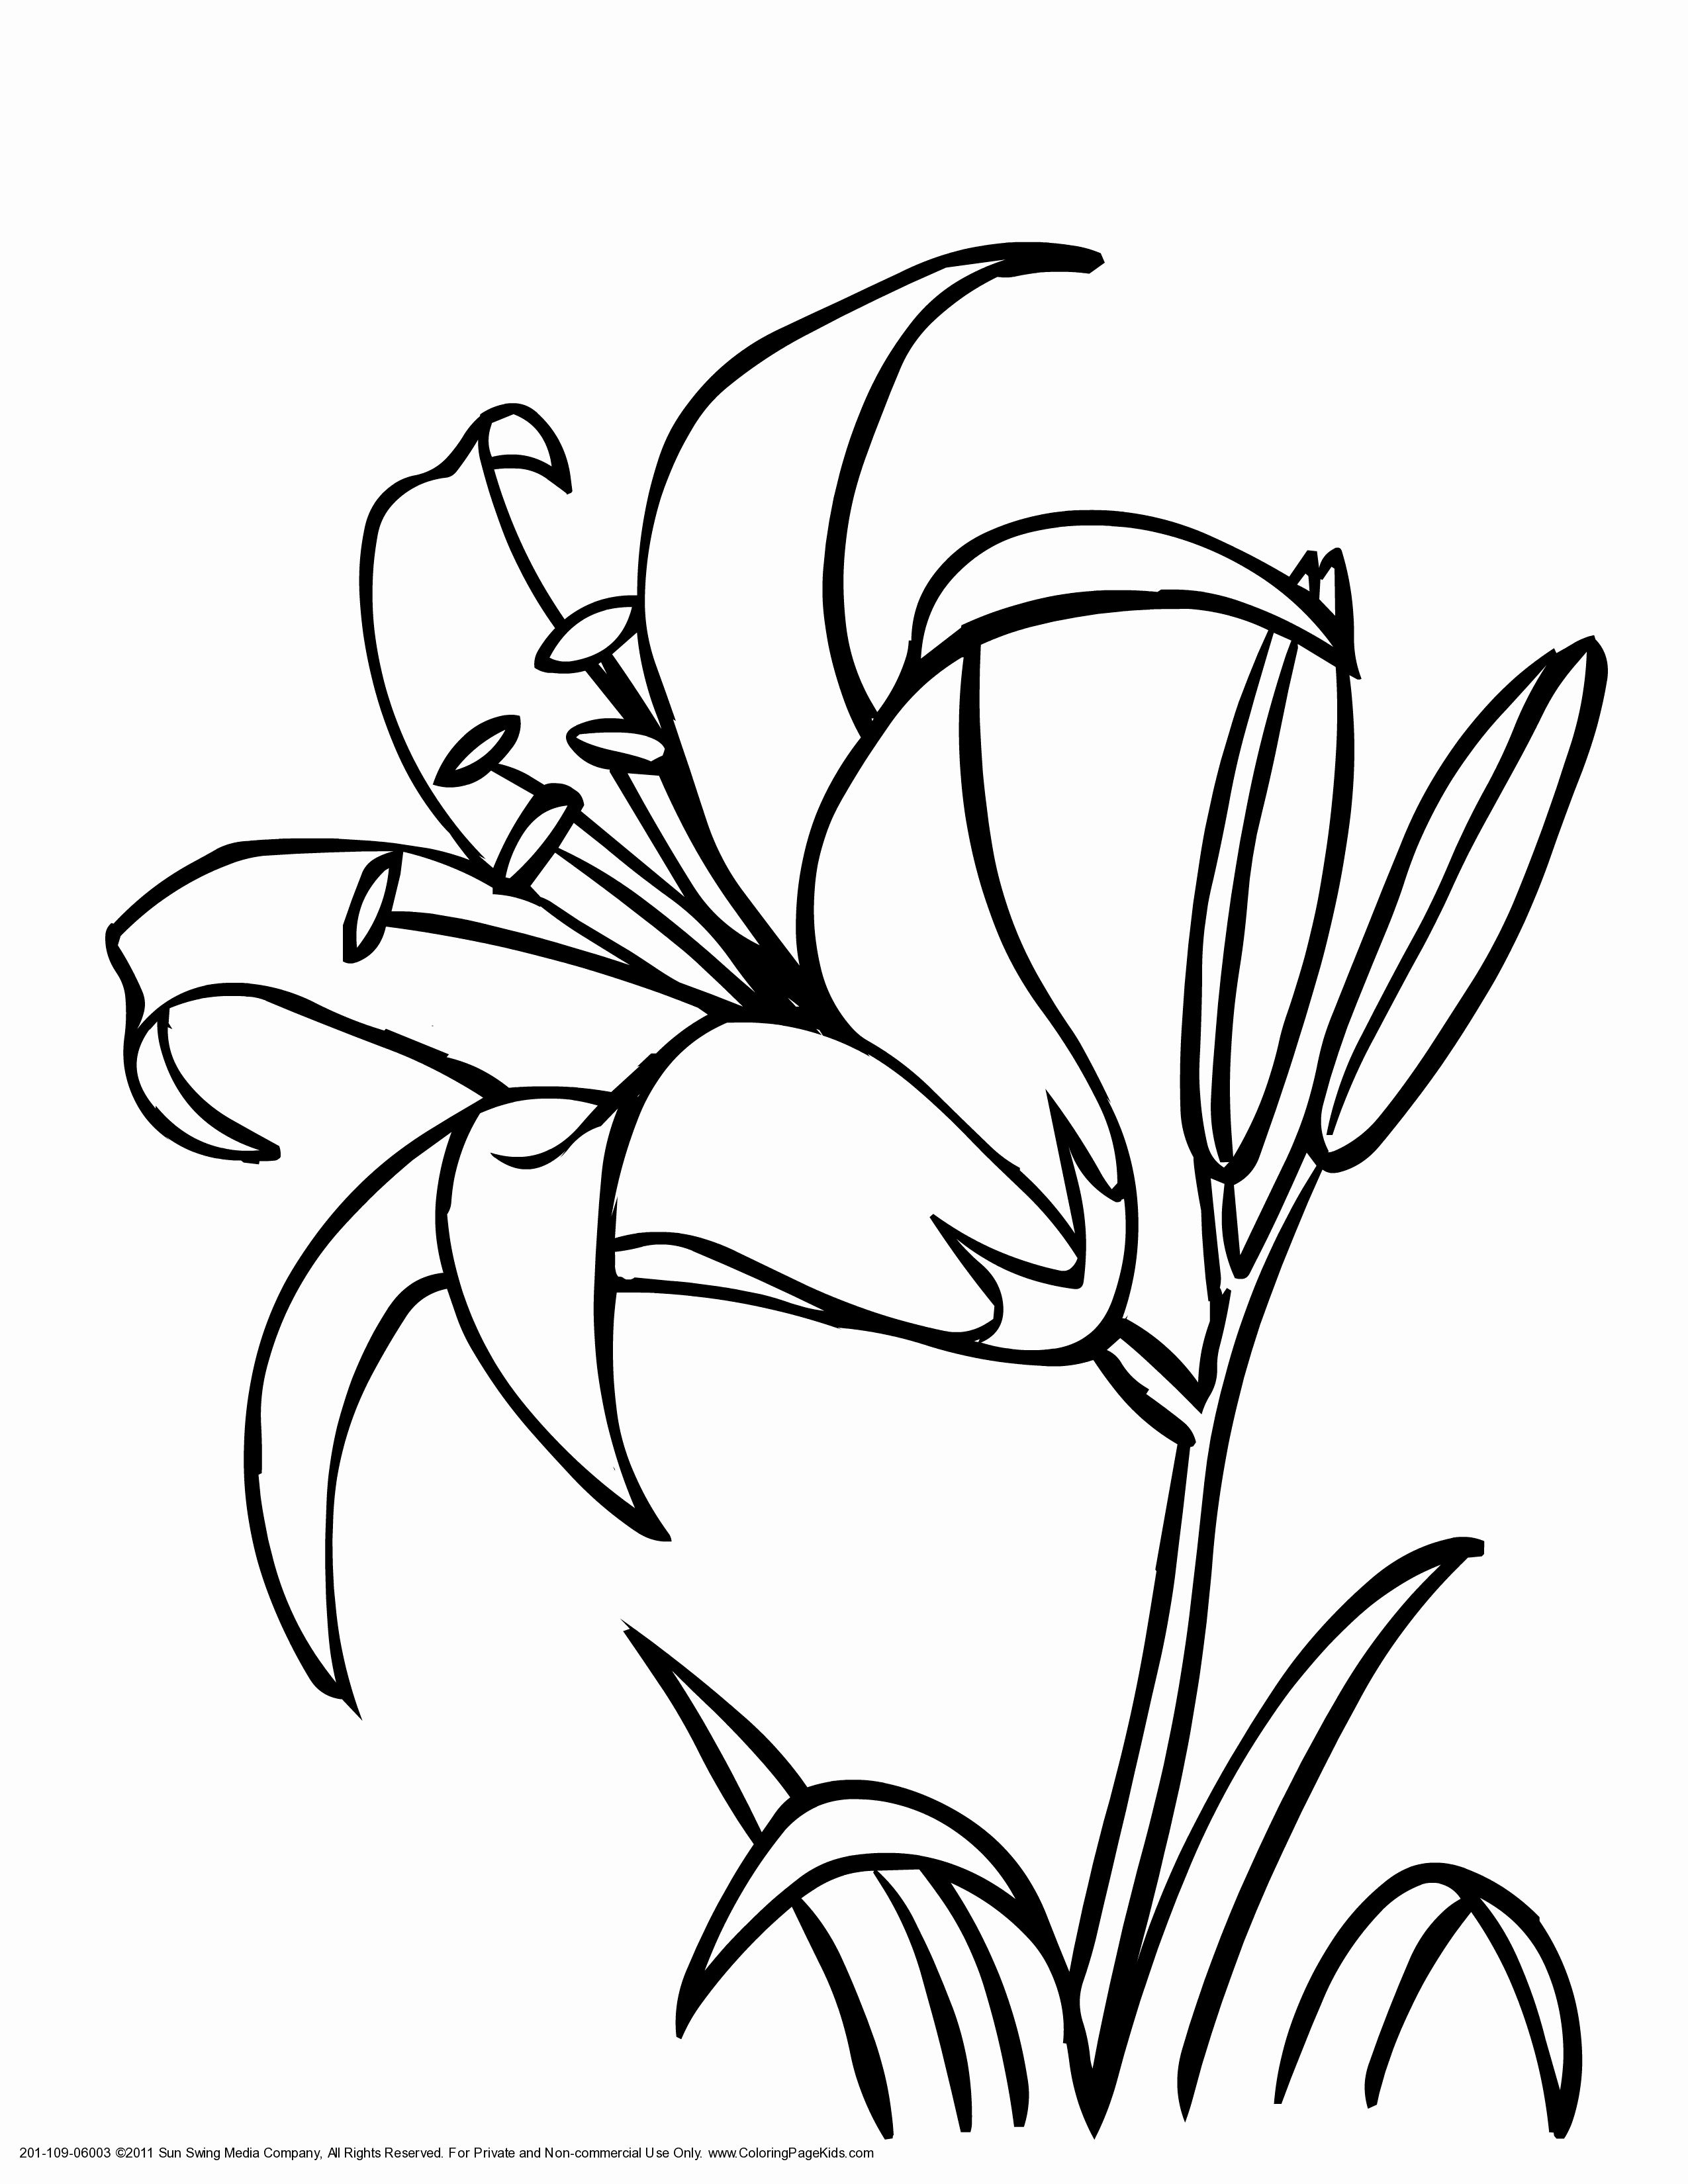 Flowers Coloring Sheets Pdf Inspirational Of Daylily And Flower Coloring Pages Sabadaphnecottage Lilies Drawing Flower Drawing Flower Line Drawings